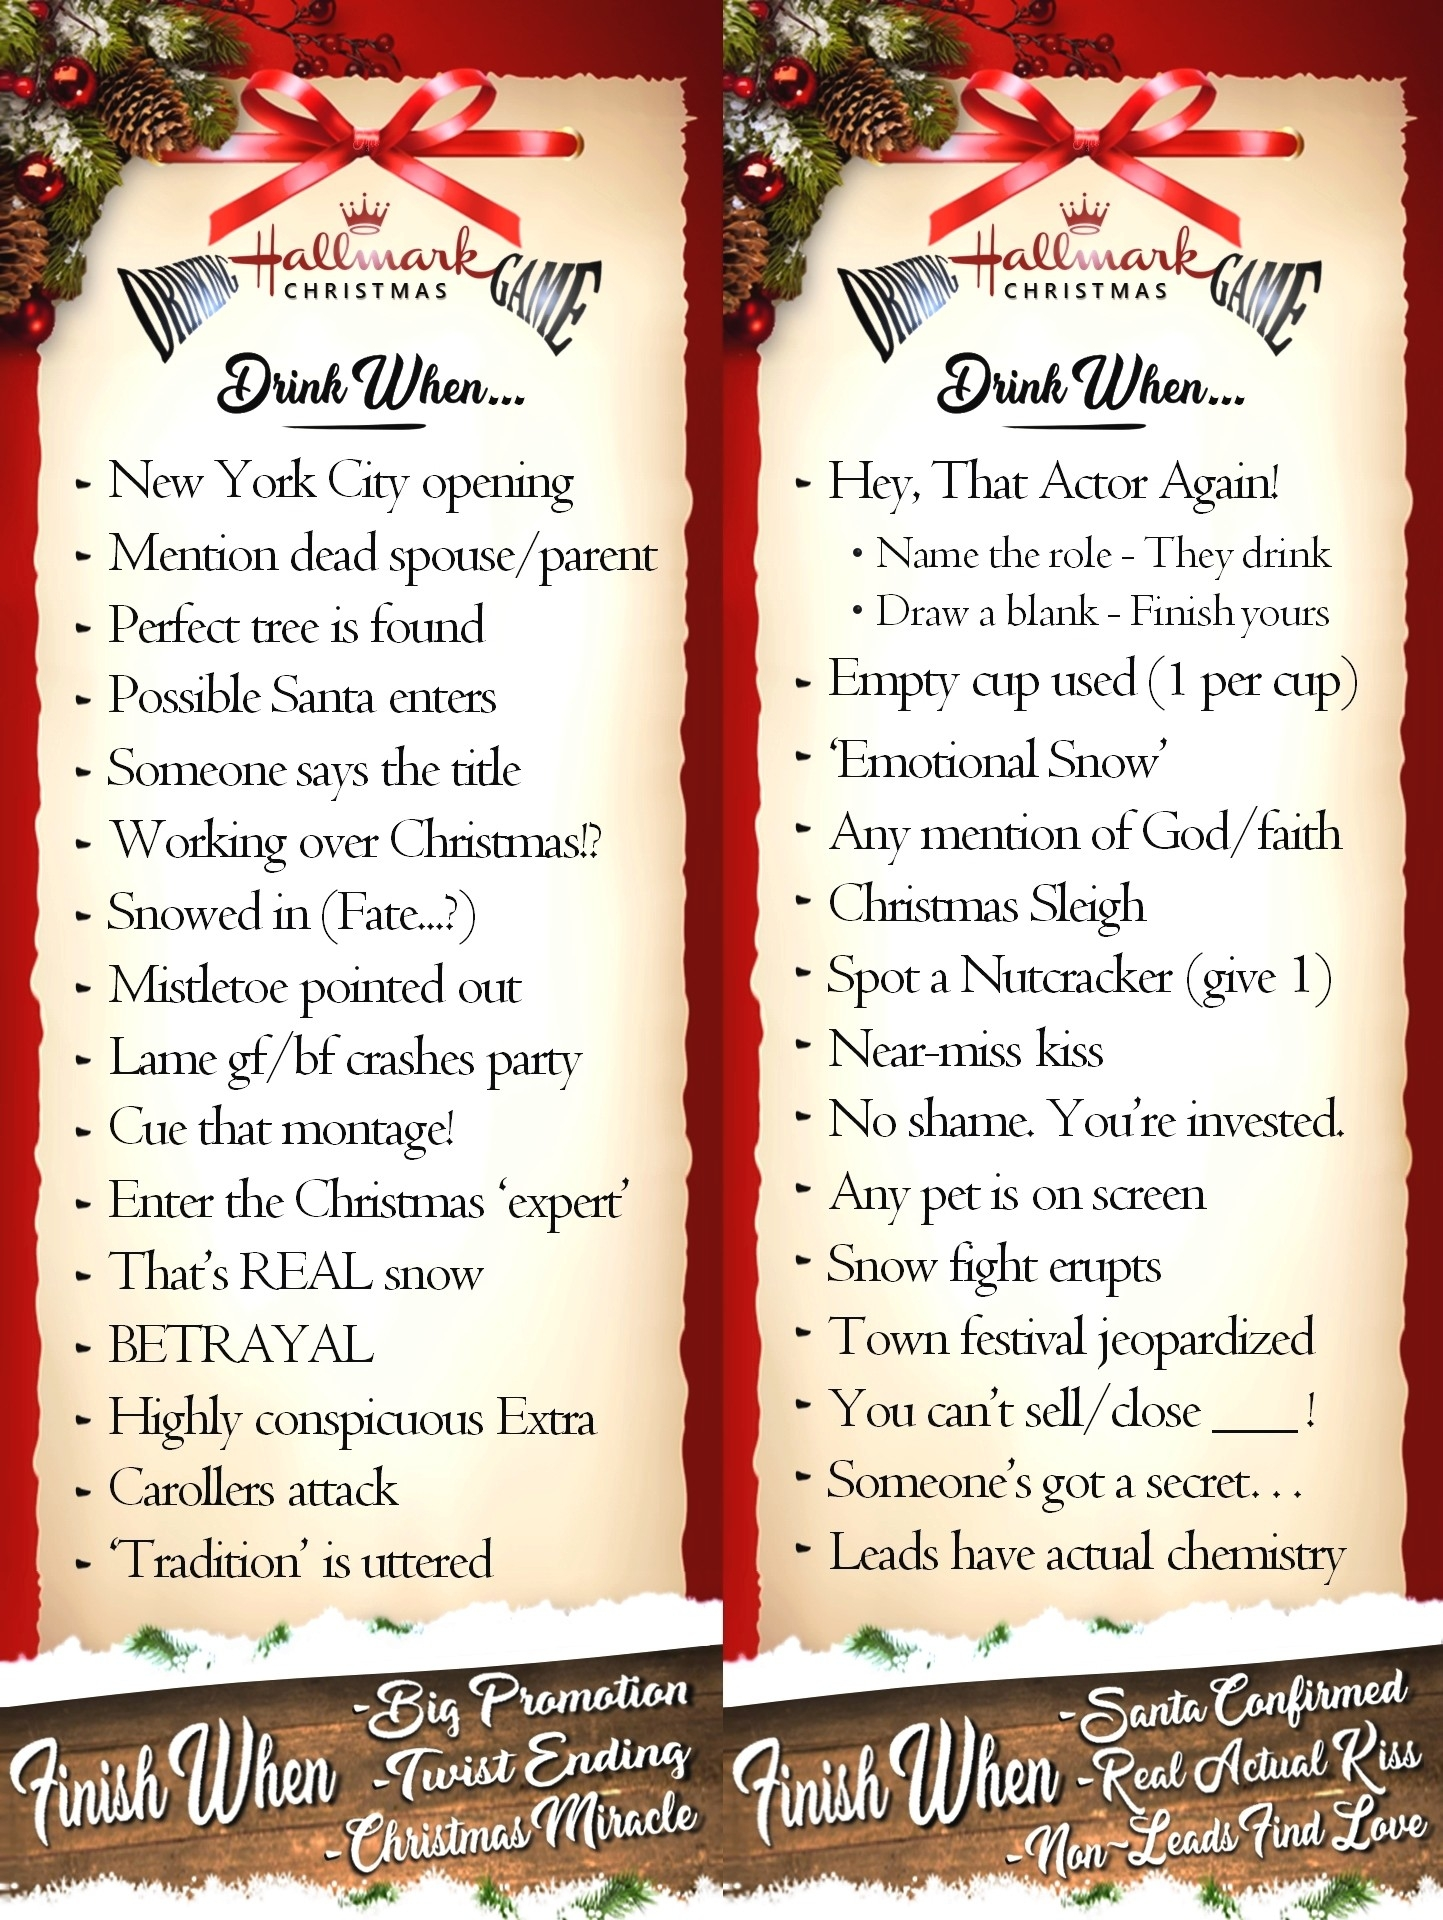 The Hallmark Christmas Movie Drinking Game Has Returned-What Are Hallmark Holidays